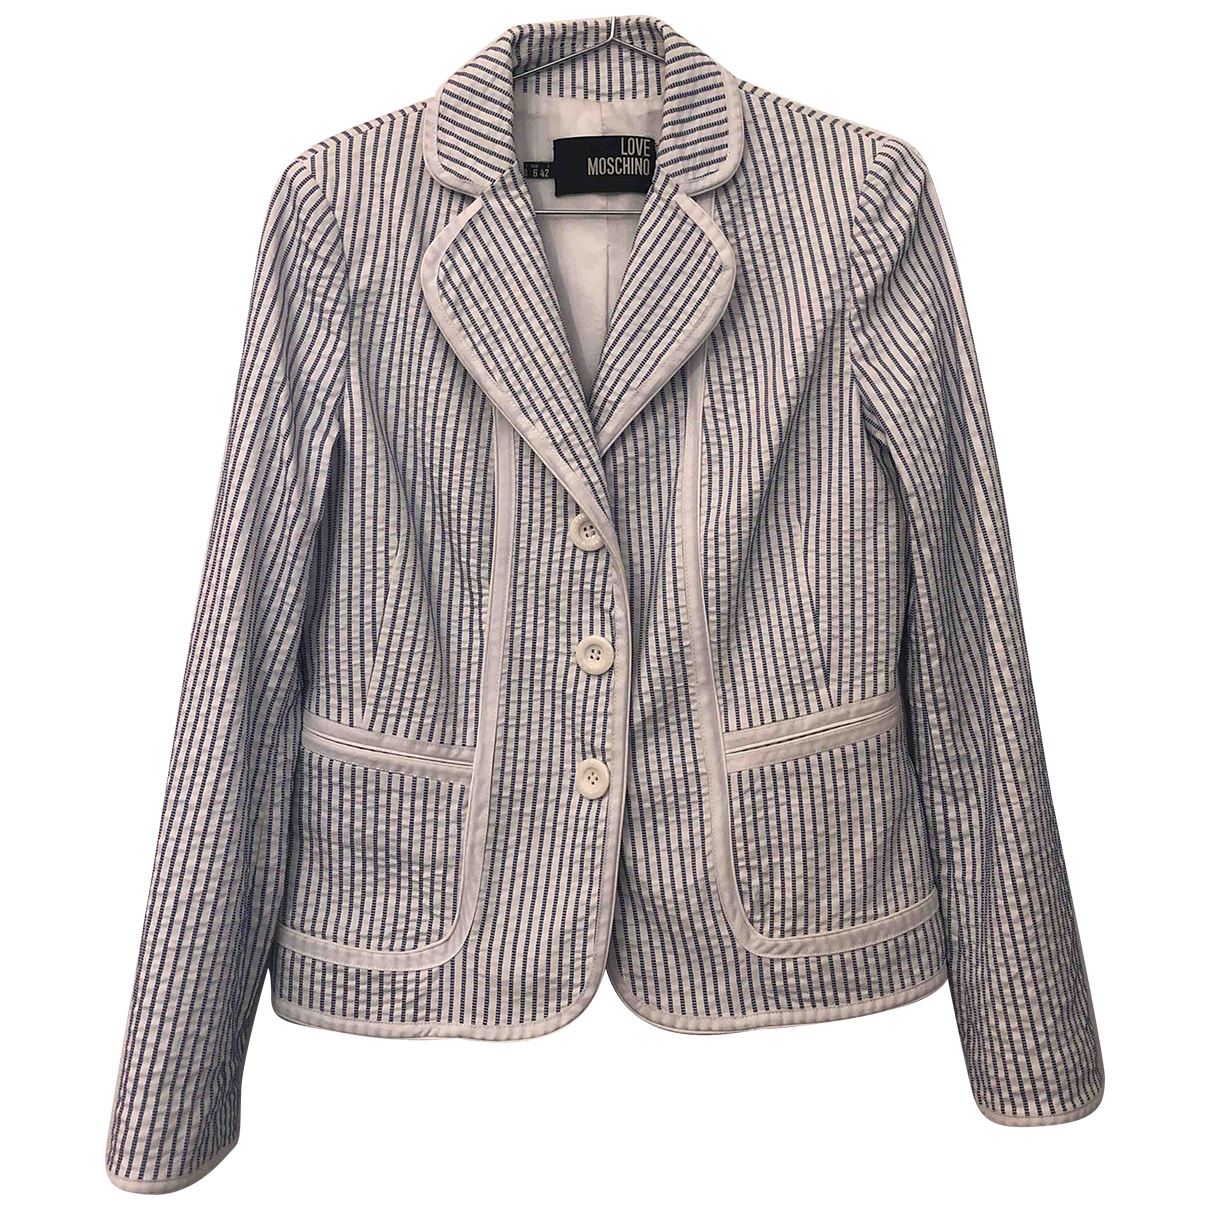 Moschino Love \N Multicolour Cotton jacket for Women 42 IT